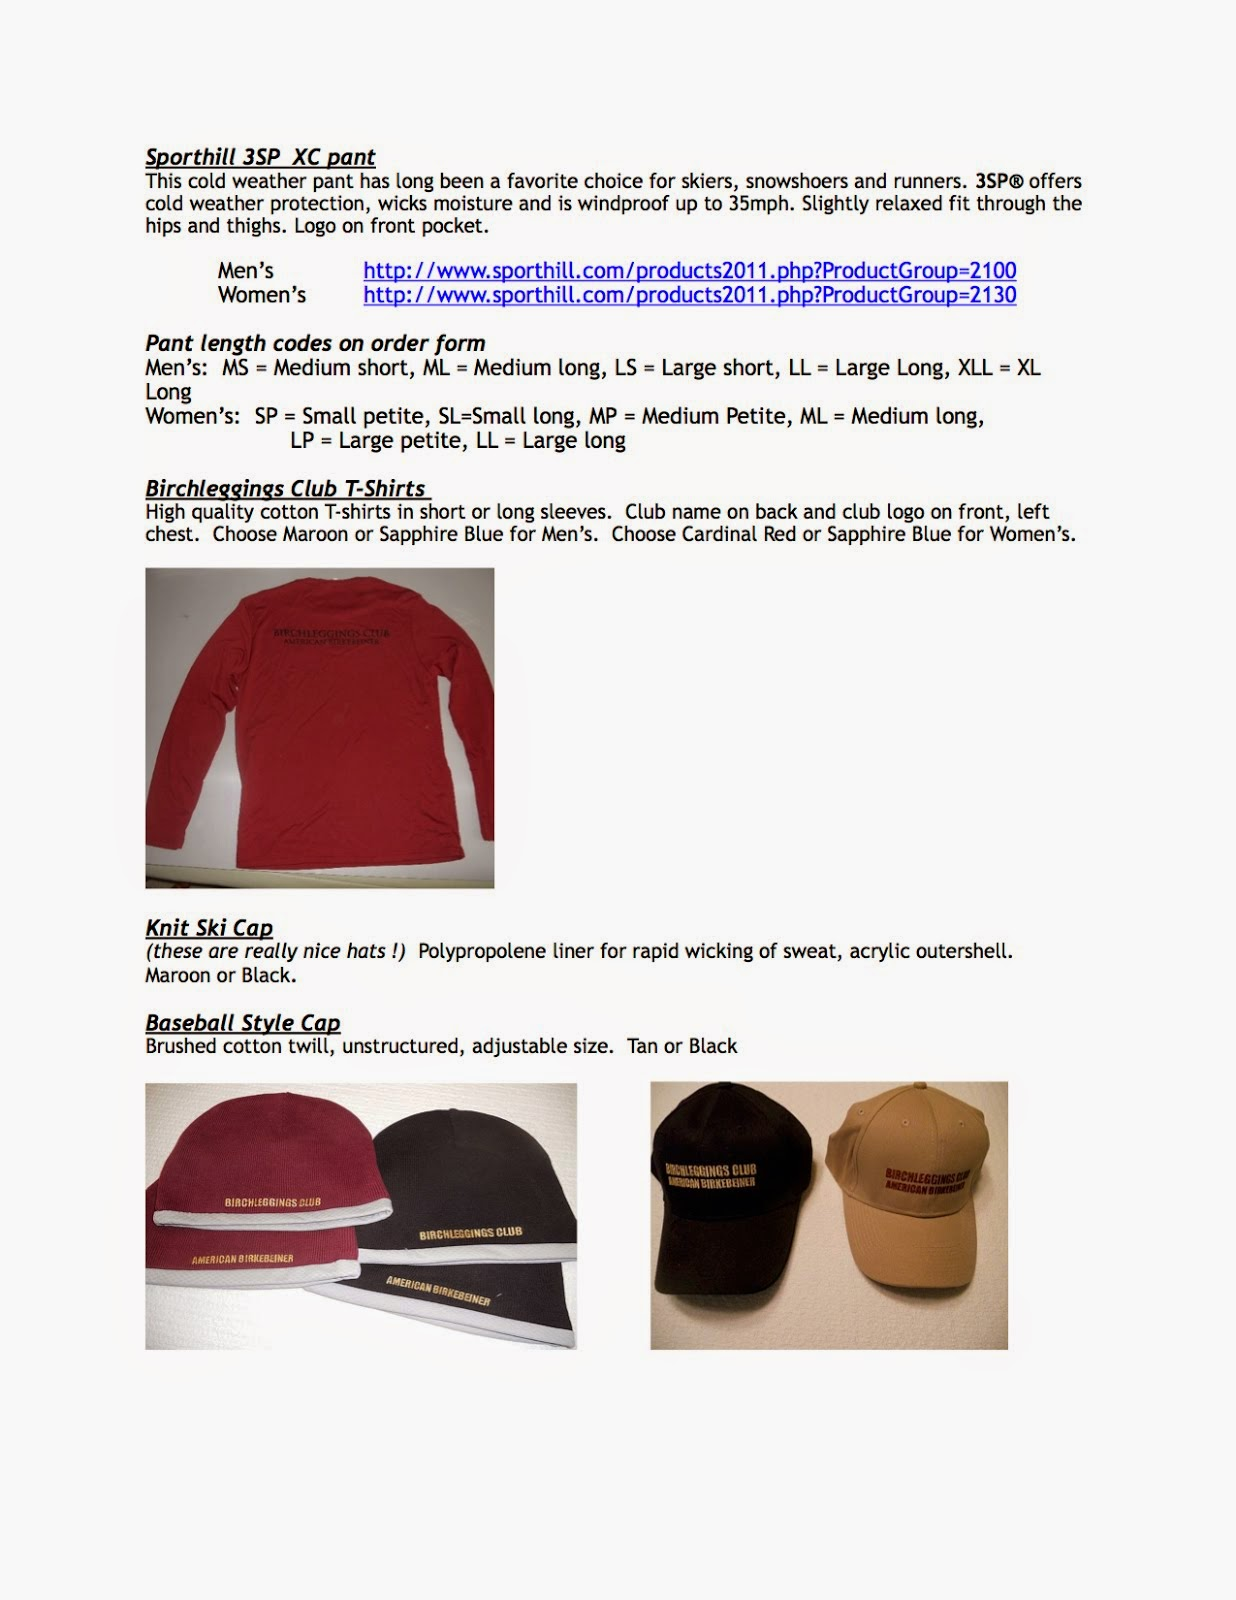 Birchlegger Clothing Pictures - Page 2